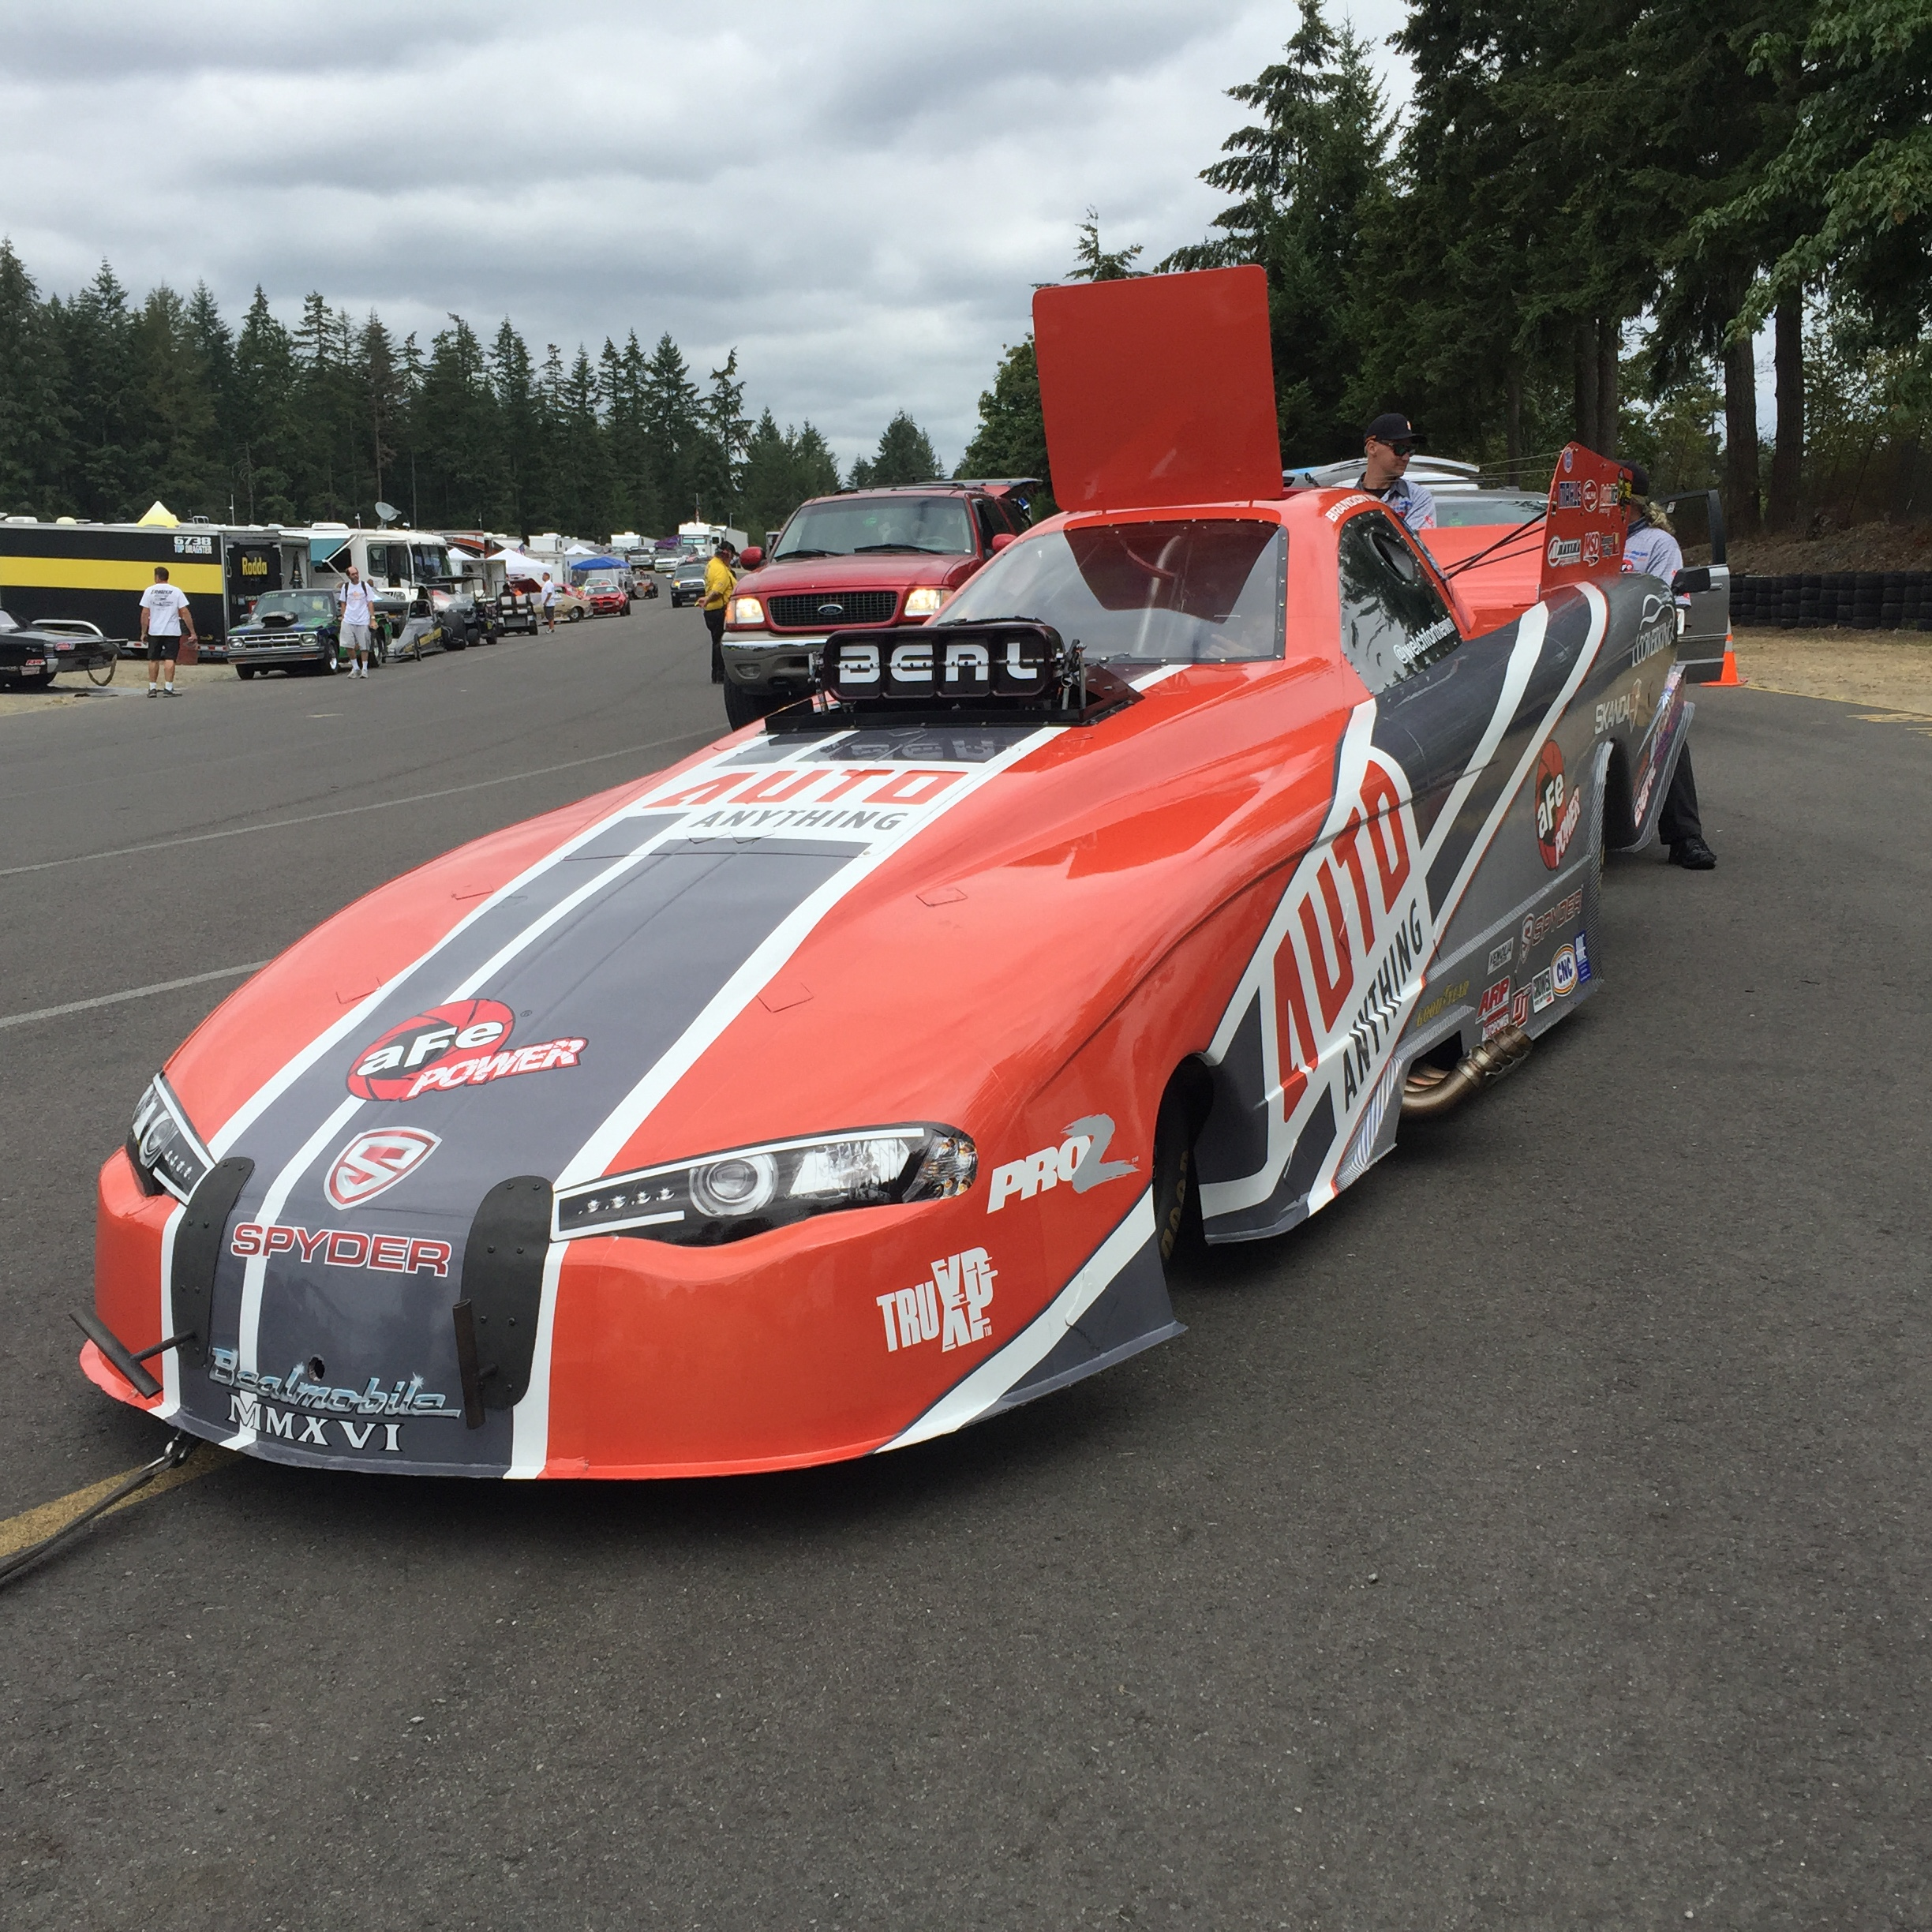 Beal Racing Seattle